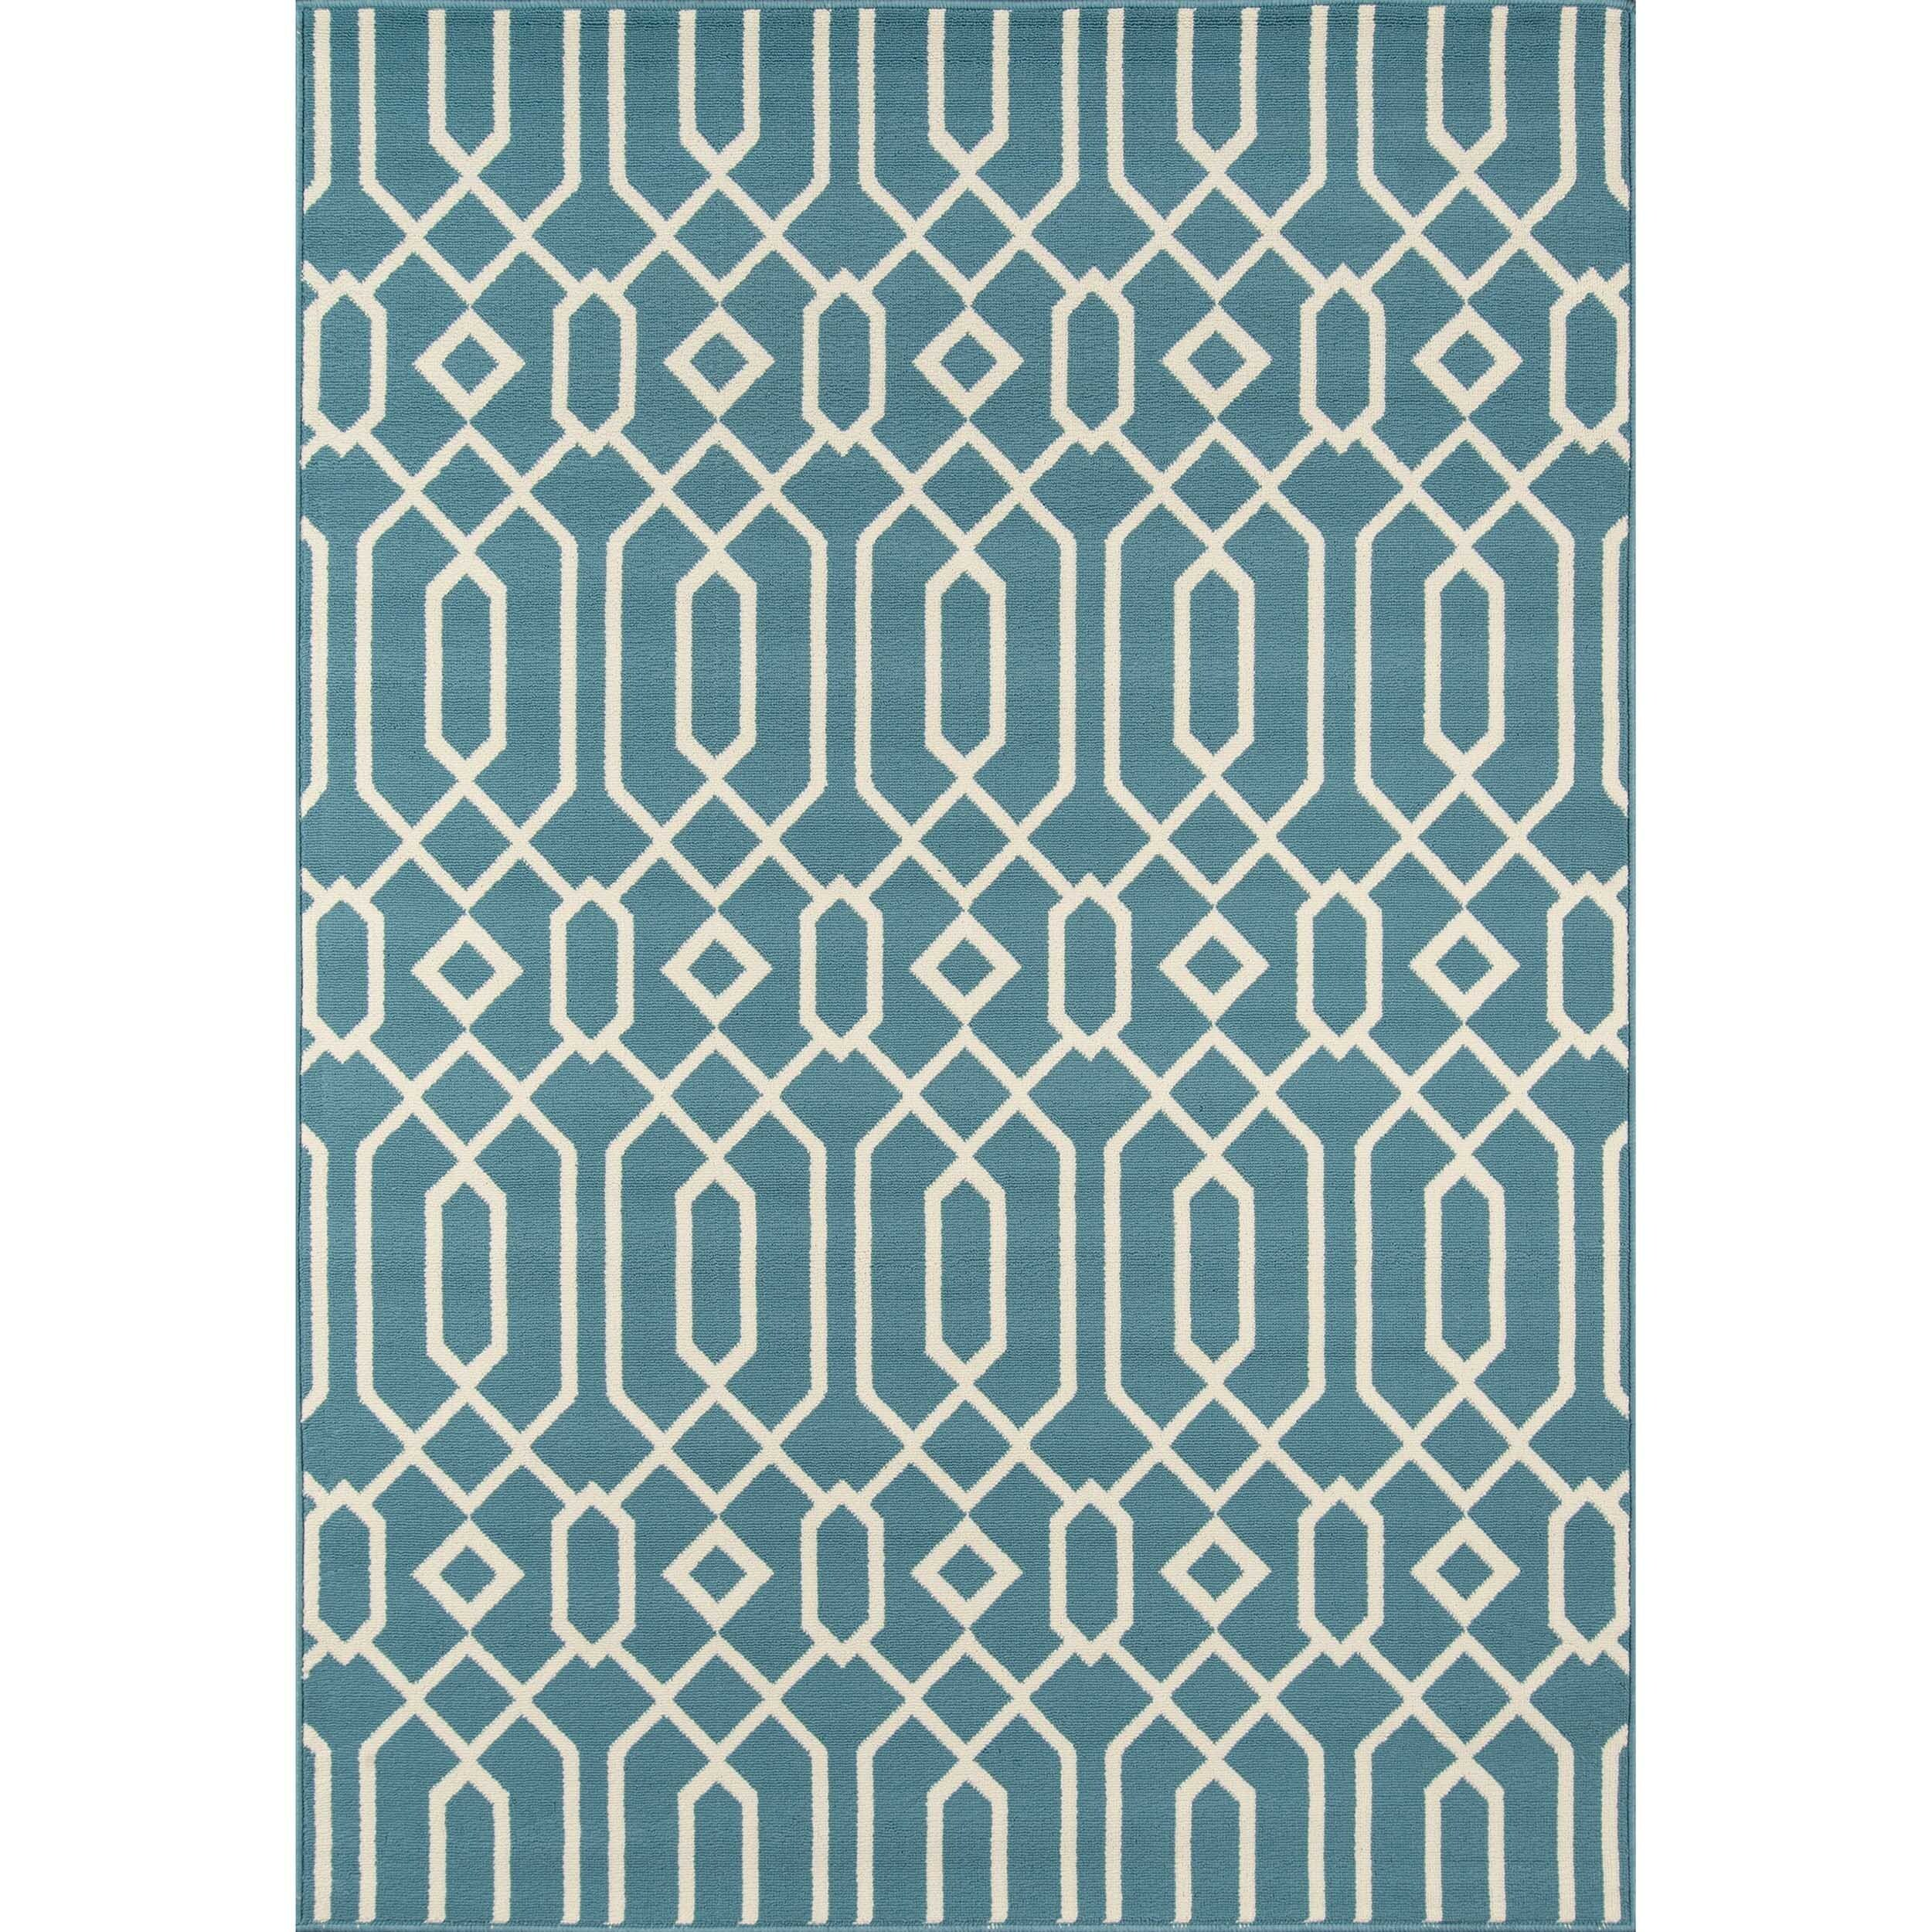 Momeni baja links blue indoor outdoor area rug 710 x